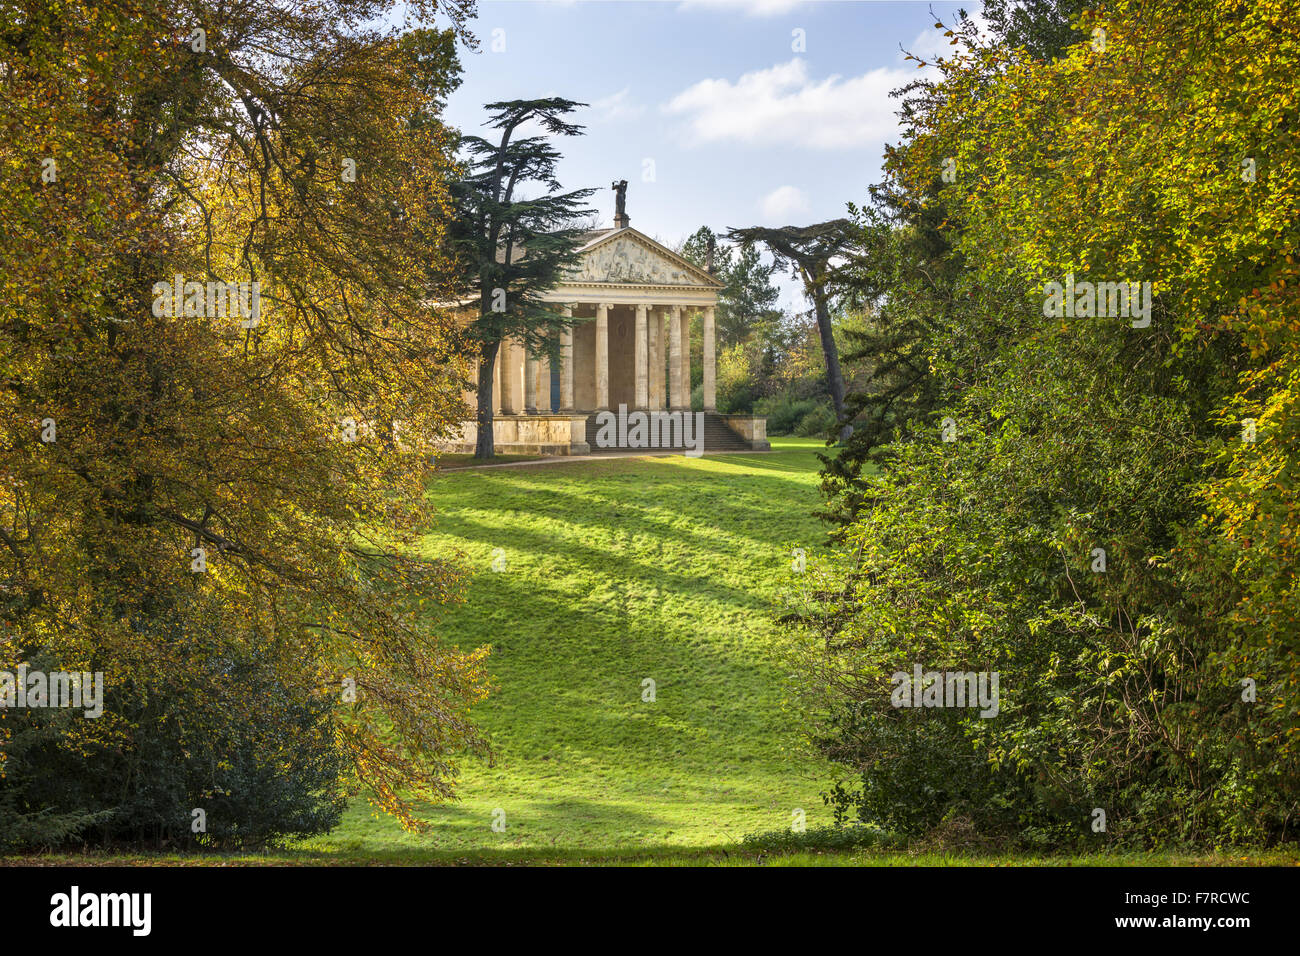 The Temple of Concord and Victory in the Grecian Valley at Stowe, Buckinghamshire. Stowe is an 18th century landscaped - Stock Image